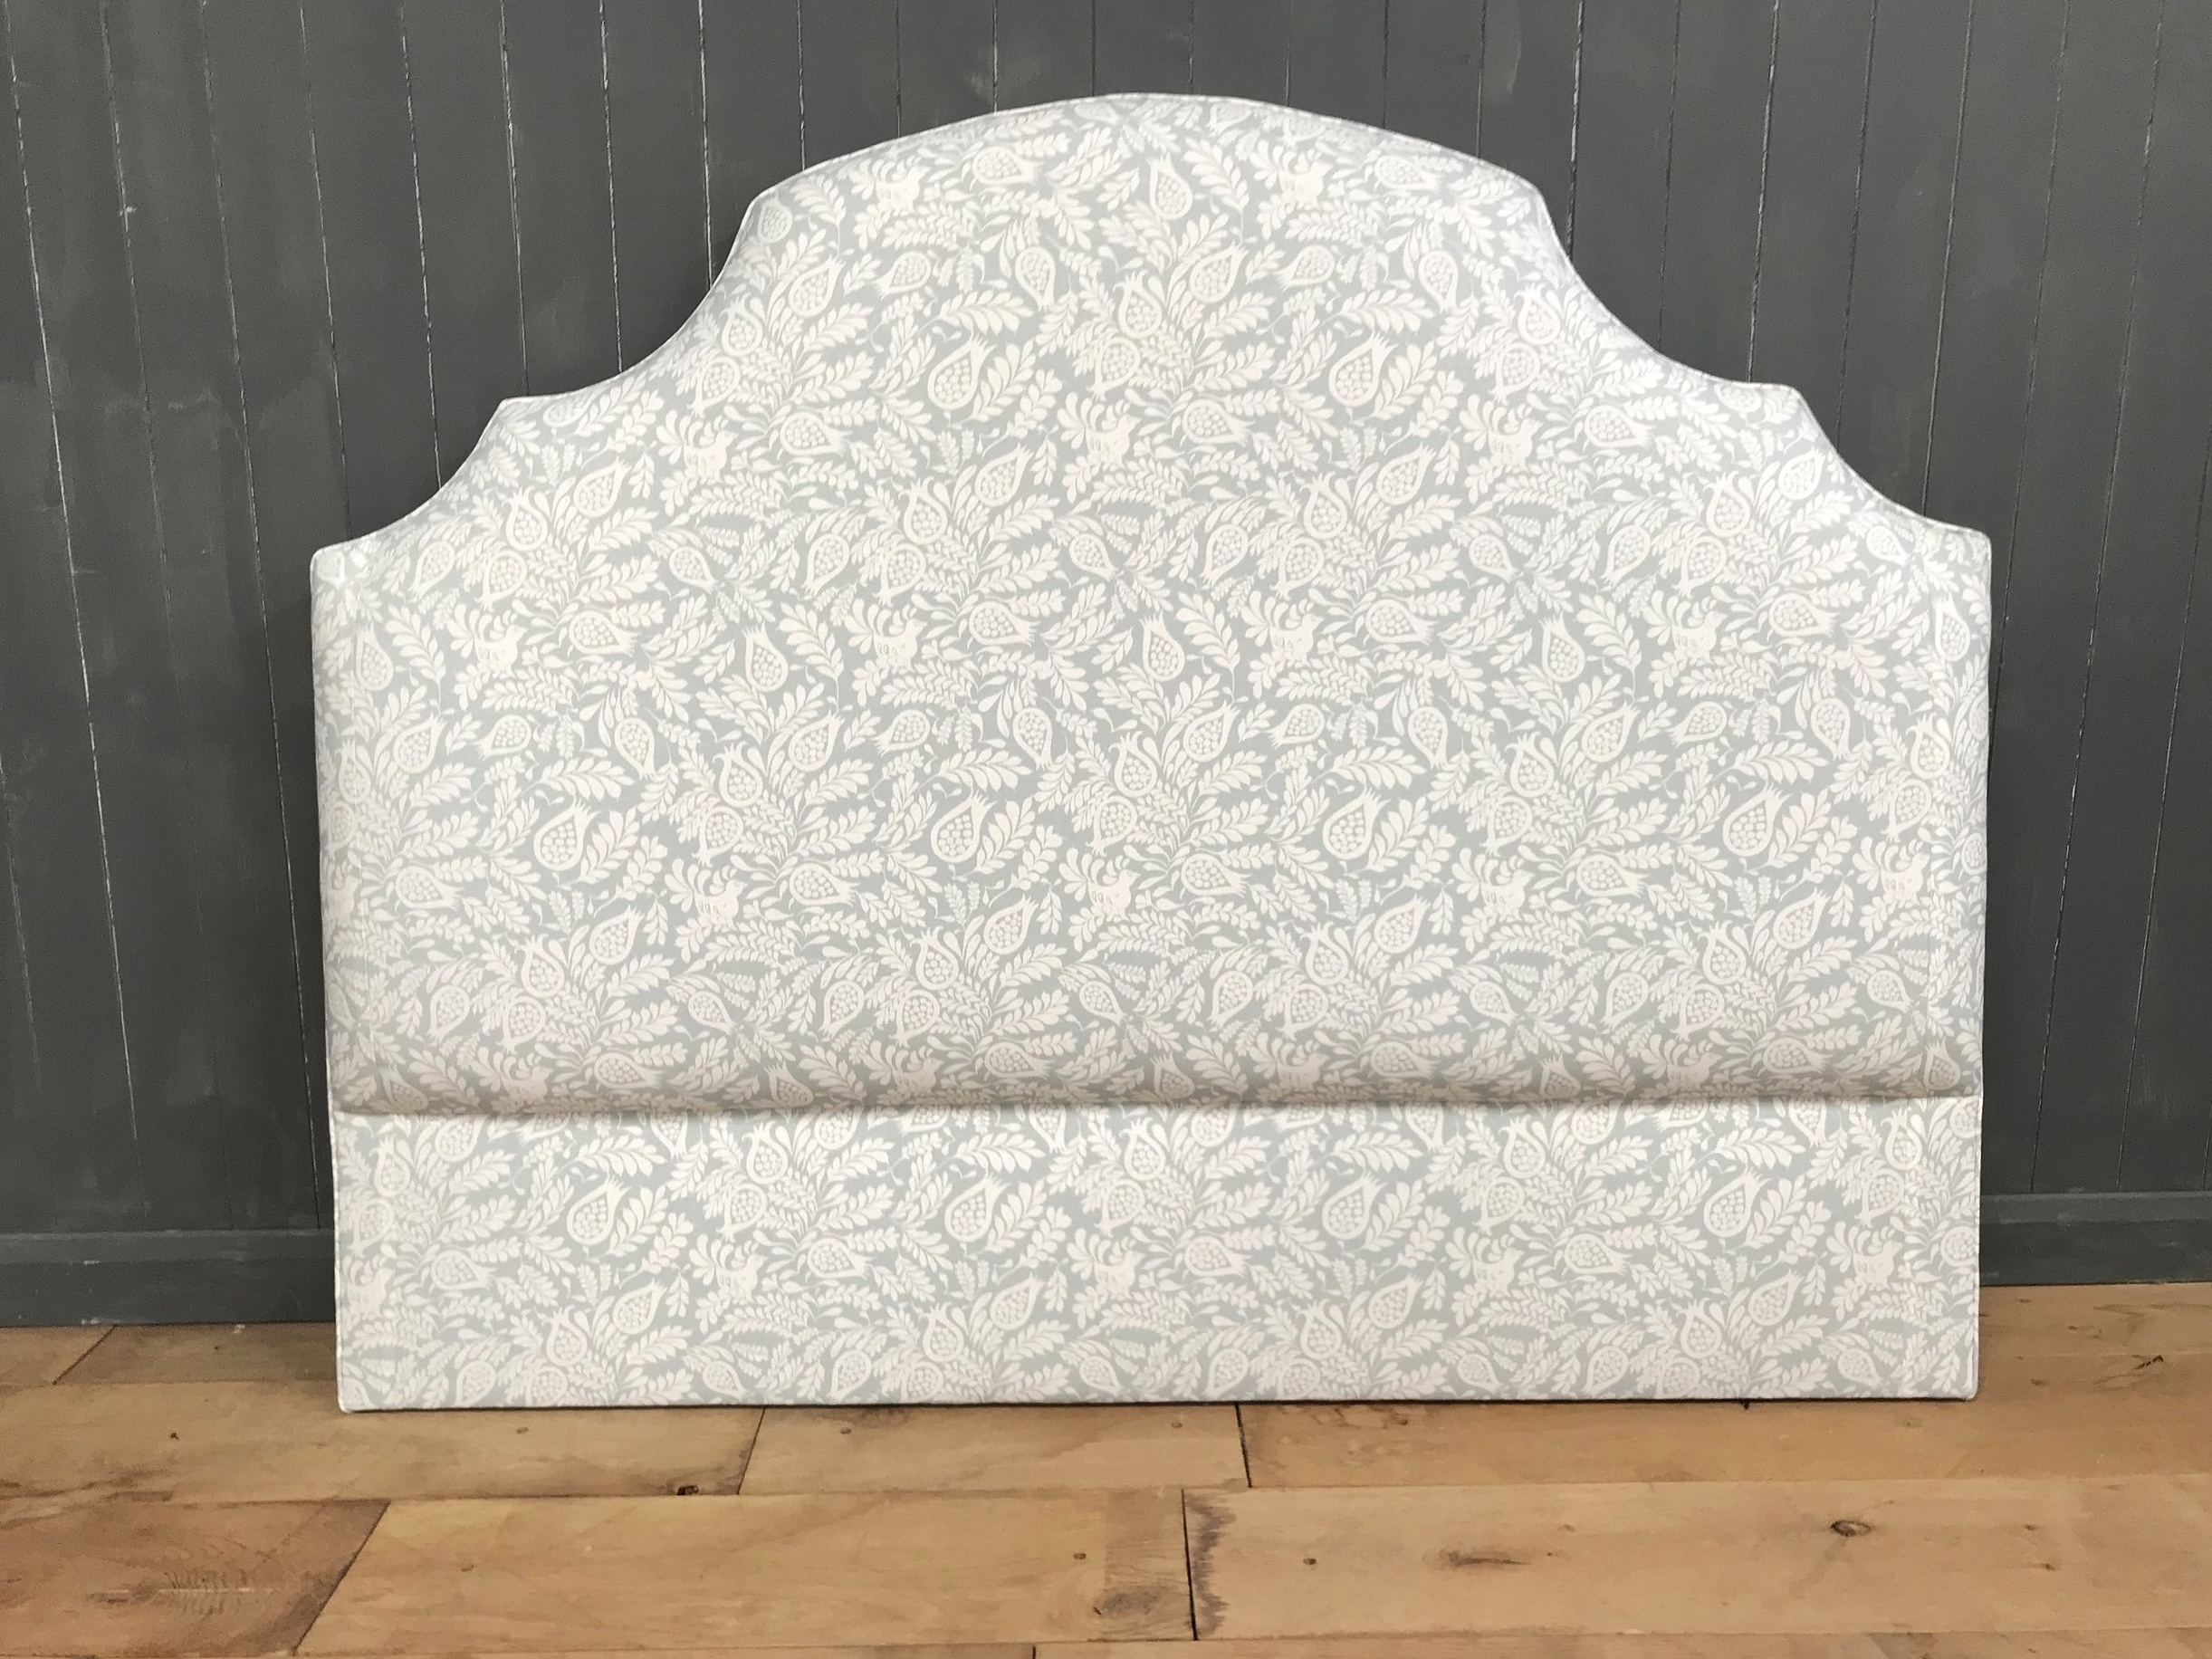 Bespoke Upholstered Headboard, self piped.